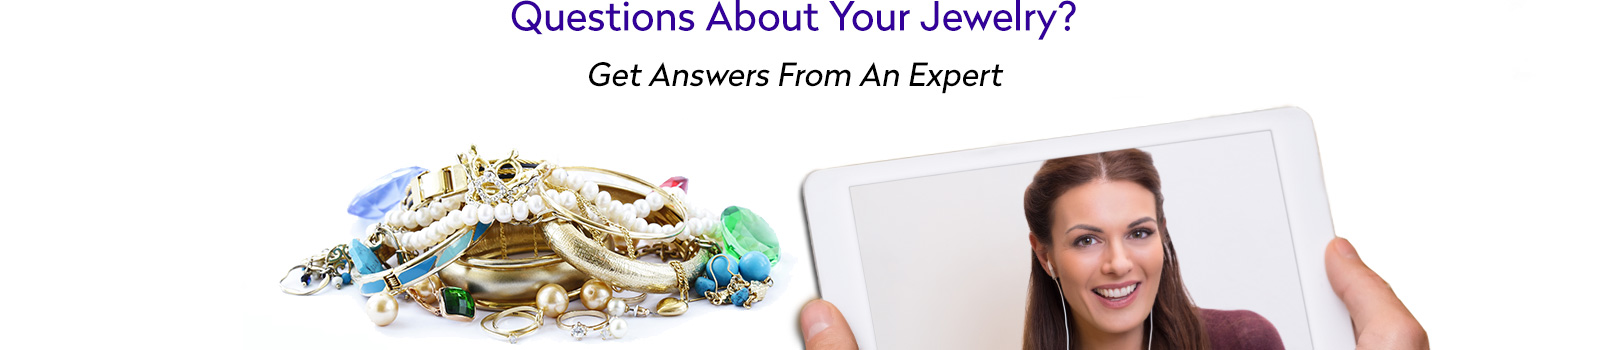 Questions About Your Jewelry?  Get Answers From An Expert Now